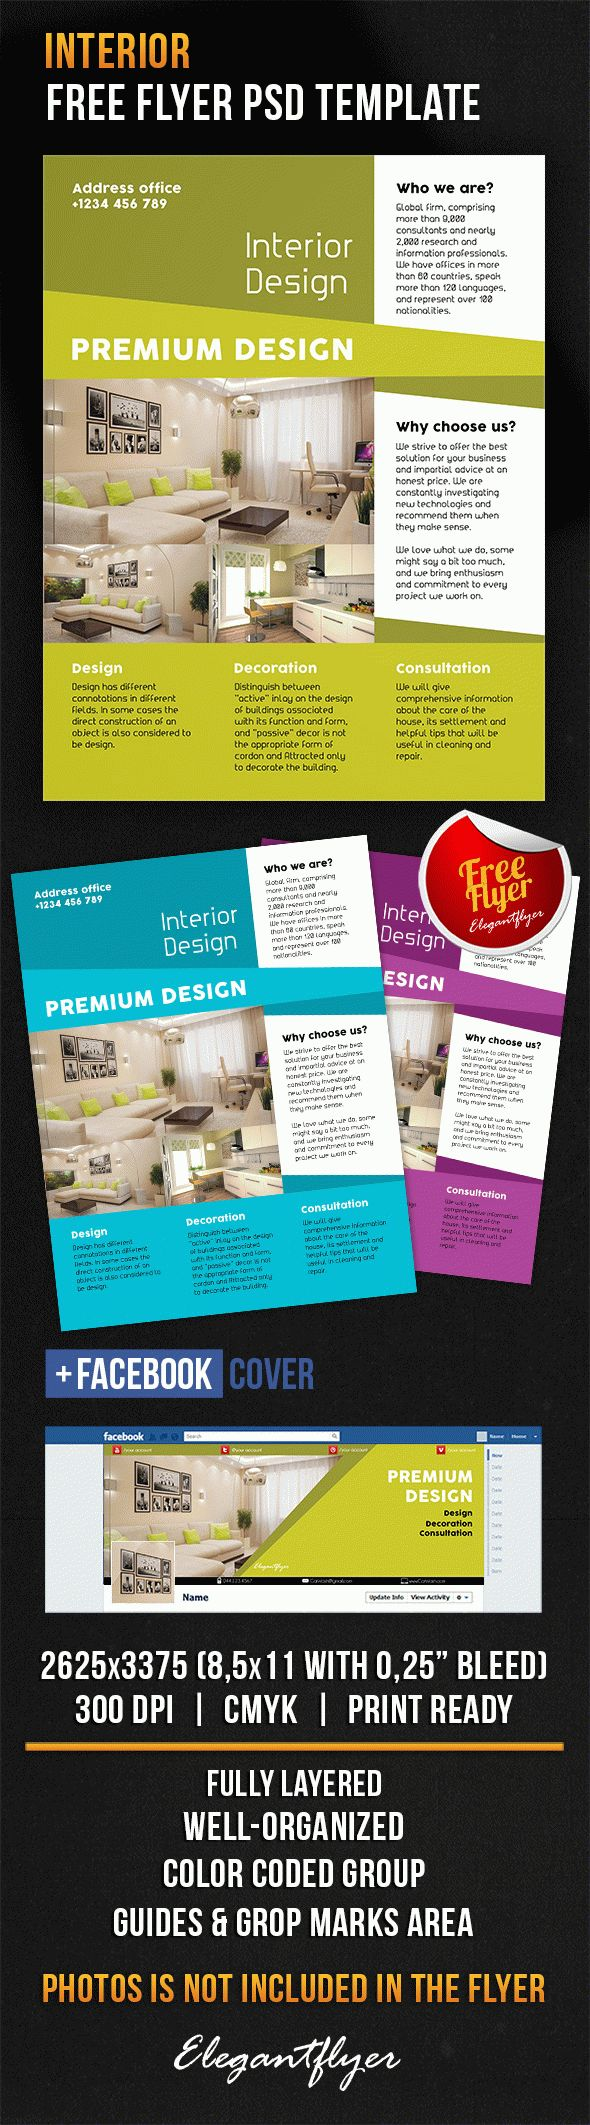 interior flyer psd template facebook cover by elegantflyer interior flyer psd template facebook cover